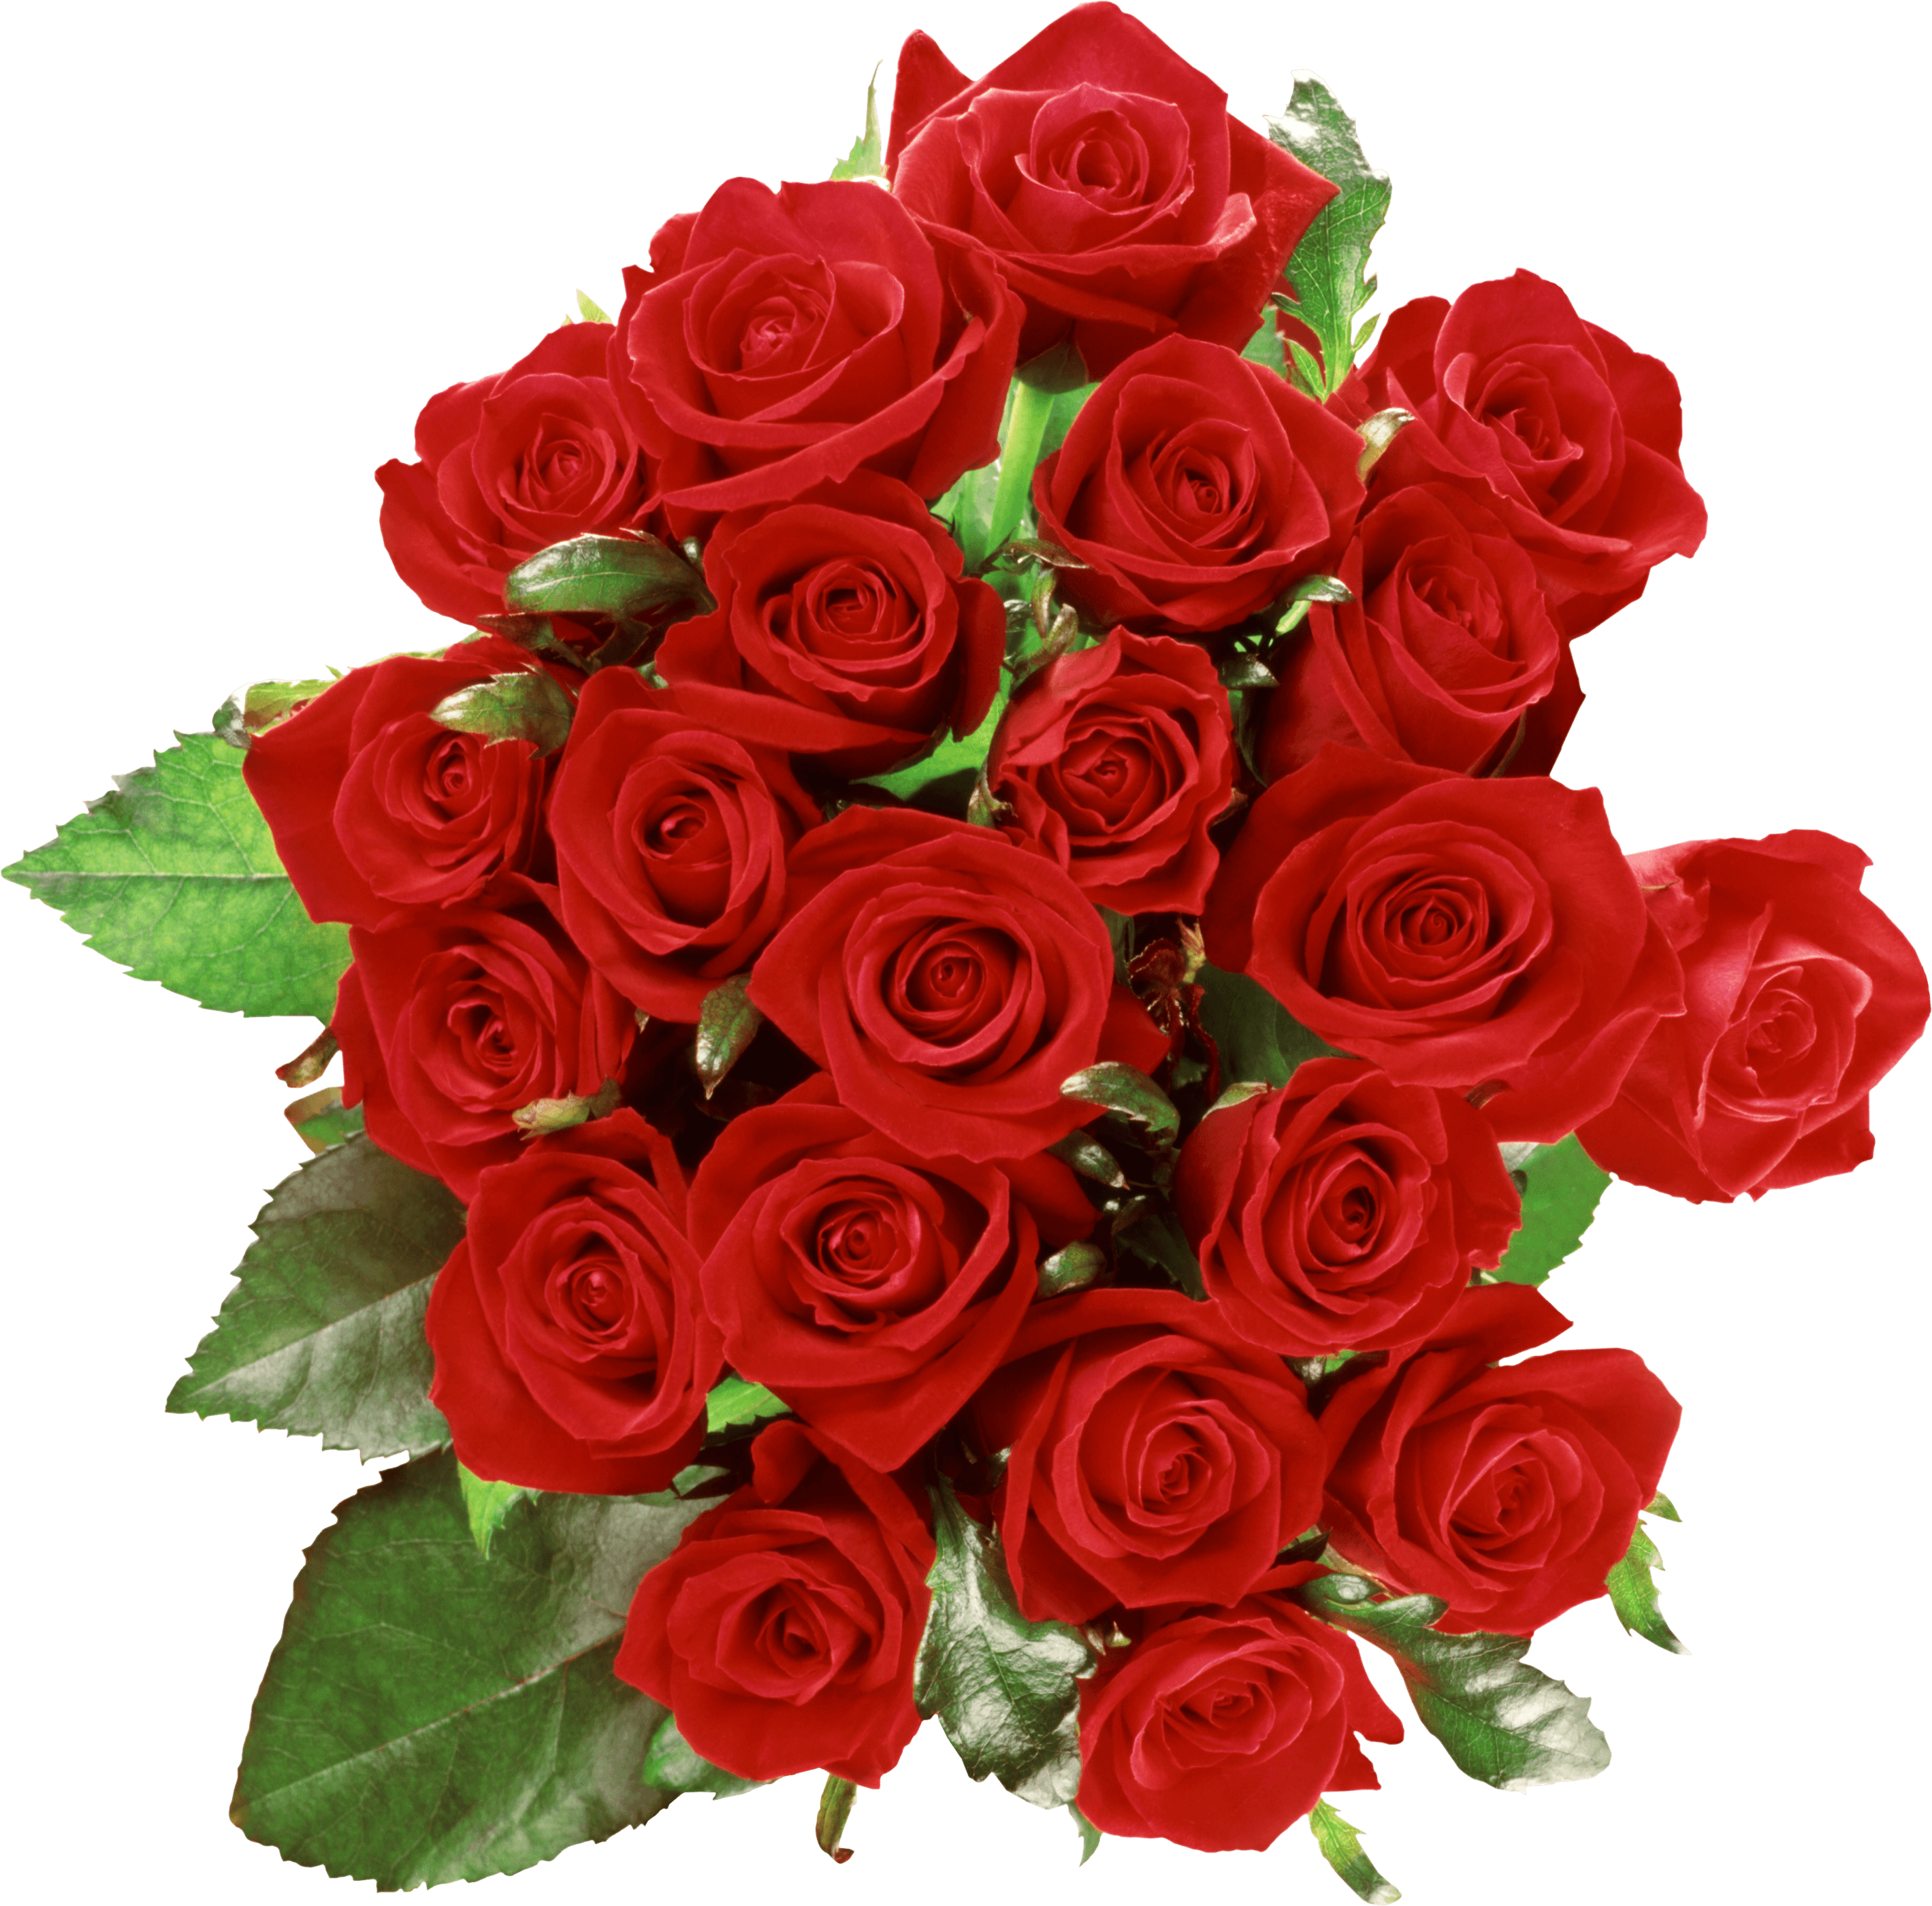 Roses stickpng. Transparent png bouquet of flowers clipart freeuse download